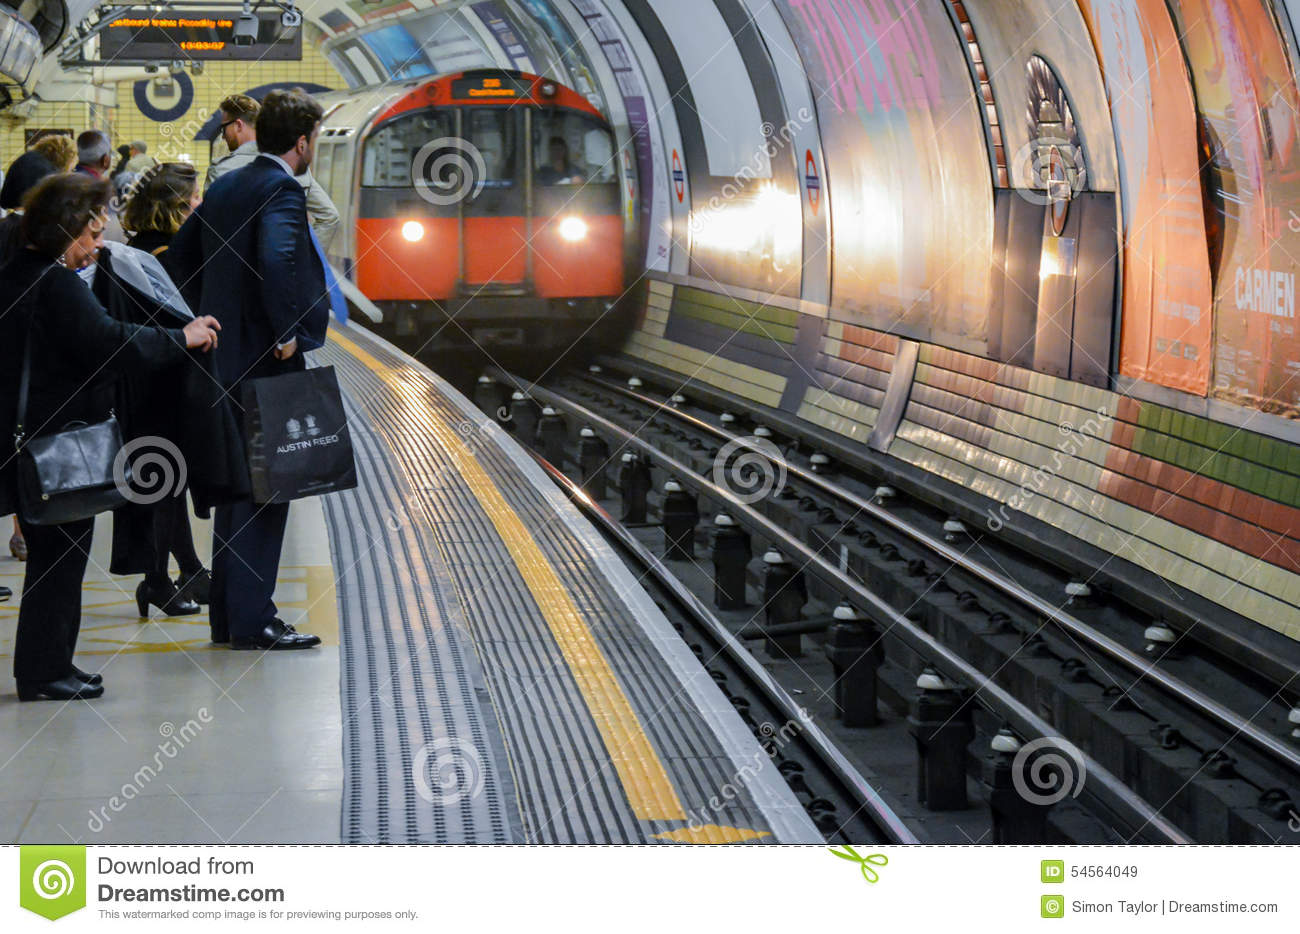 London Underground - people waiting for a train